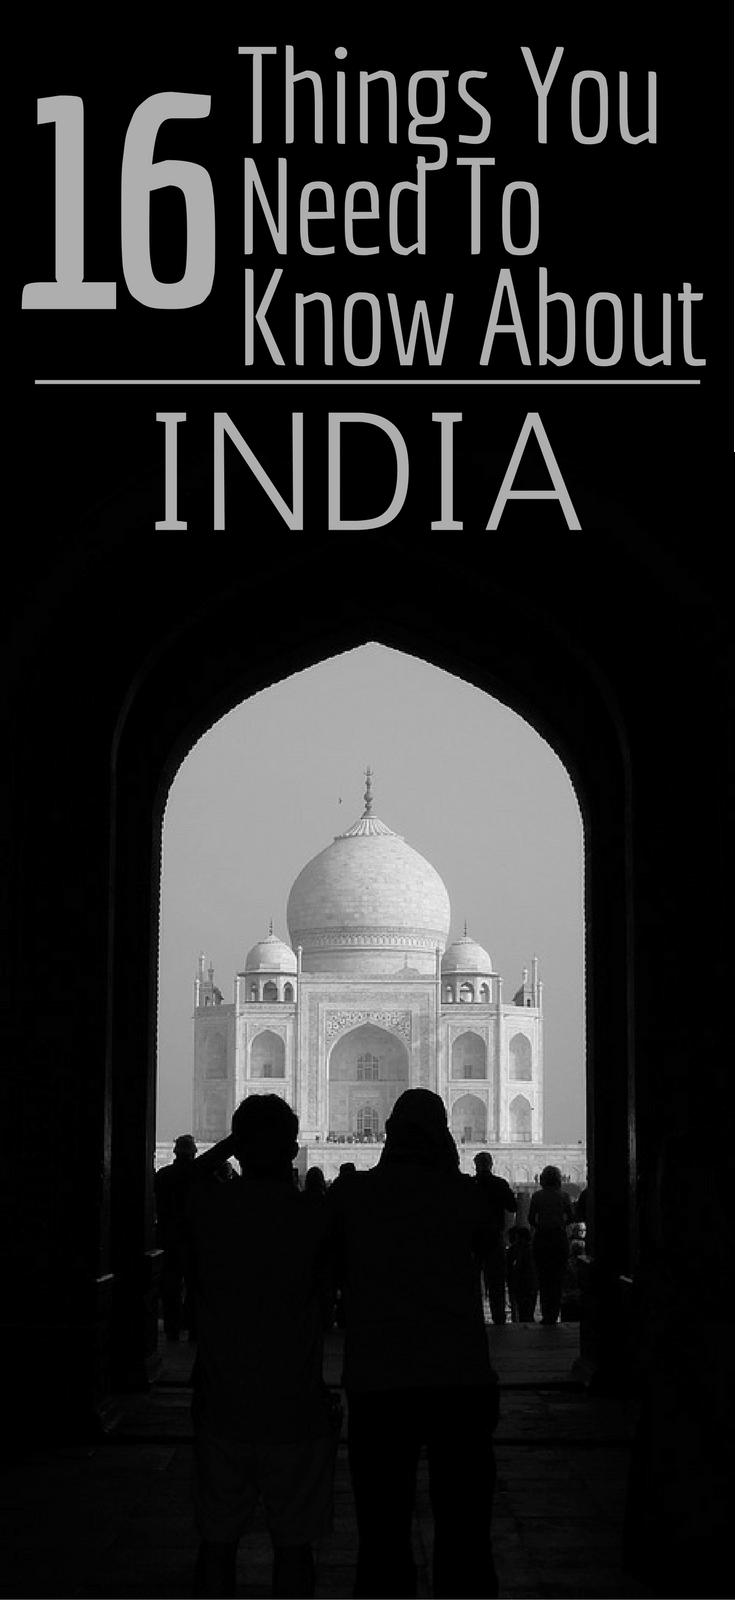 16 Things You Need To Know About India